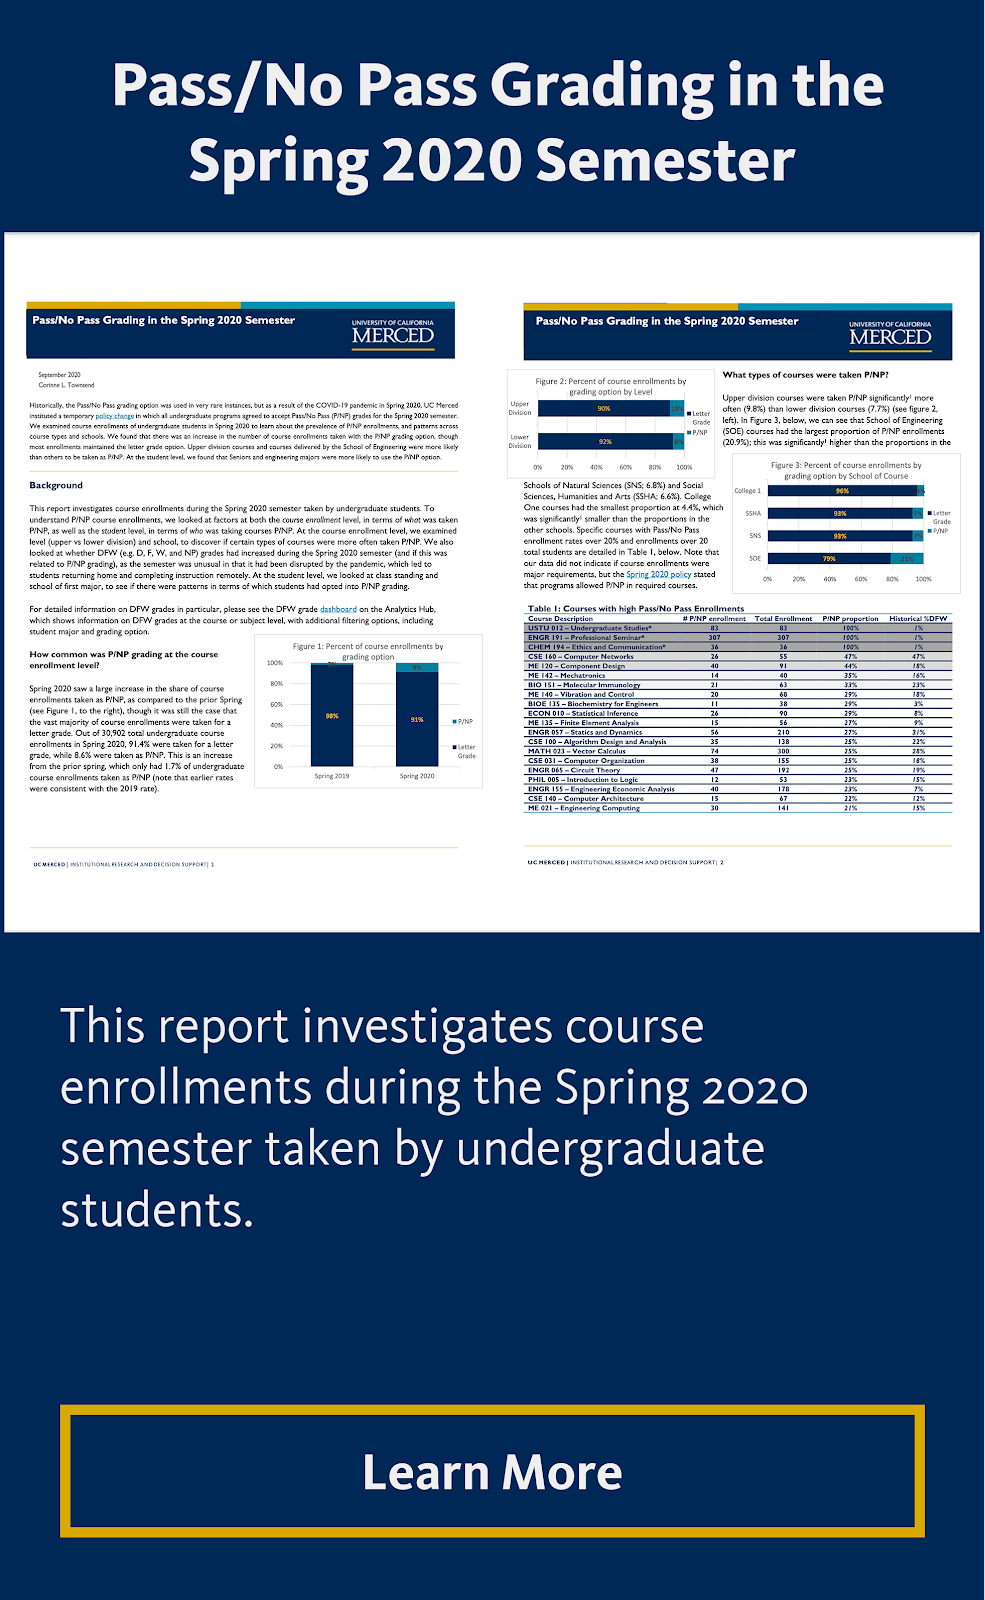 Pass/No Pass Grading in the Spring 2020 Semester